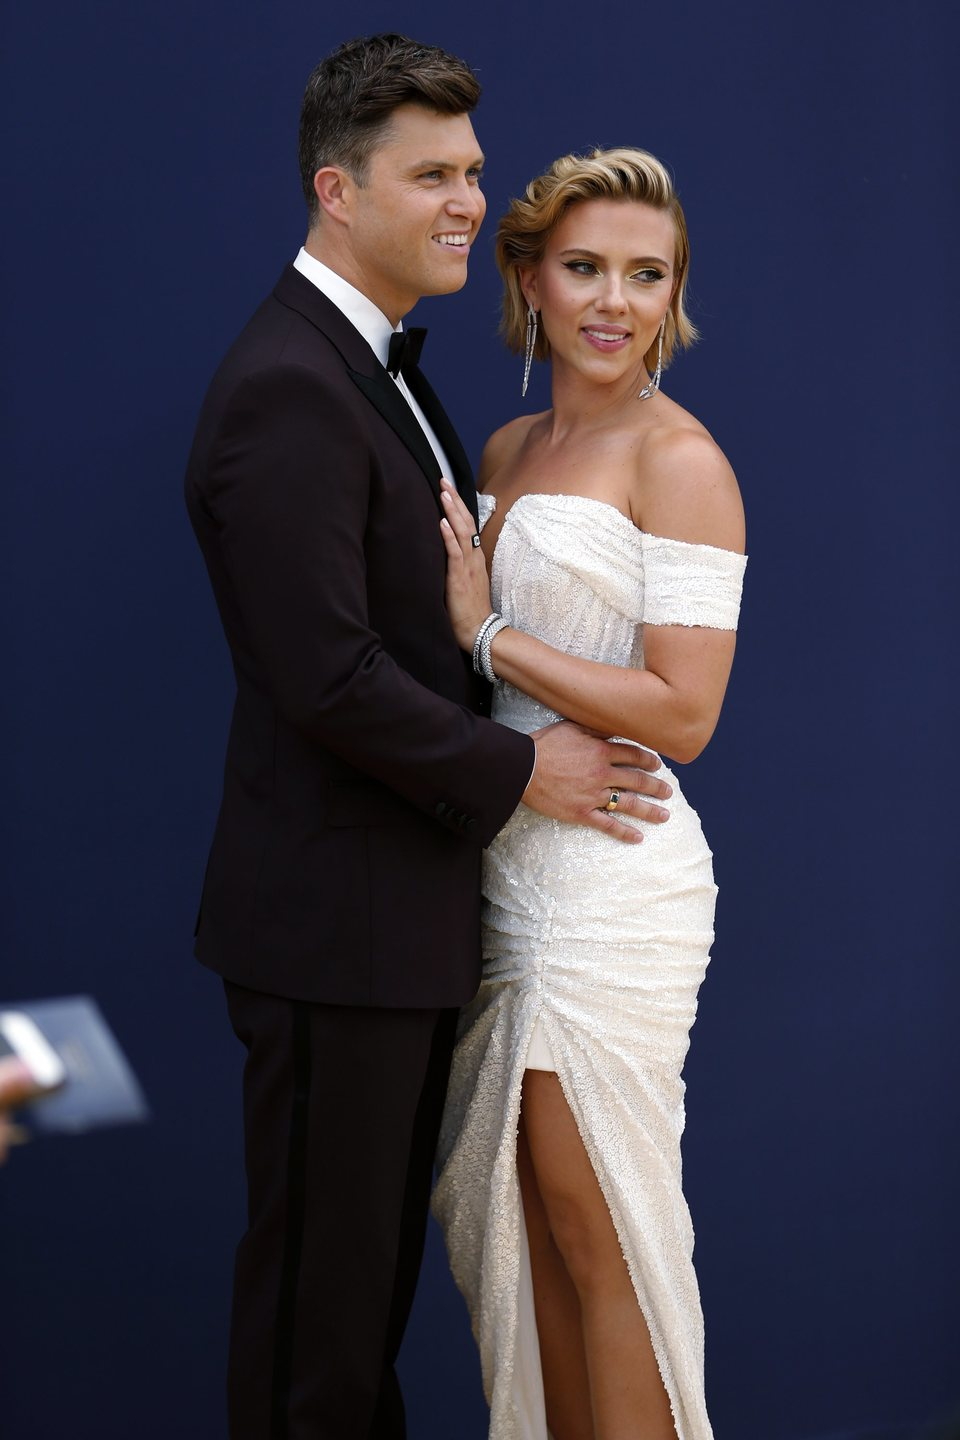 Scarlett Johansson y Colin Jost at the Emmys 2018 red carpet